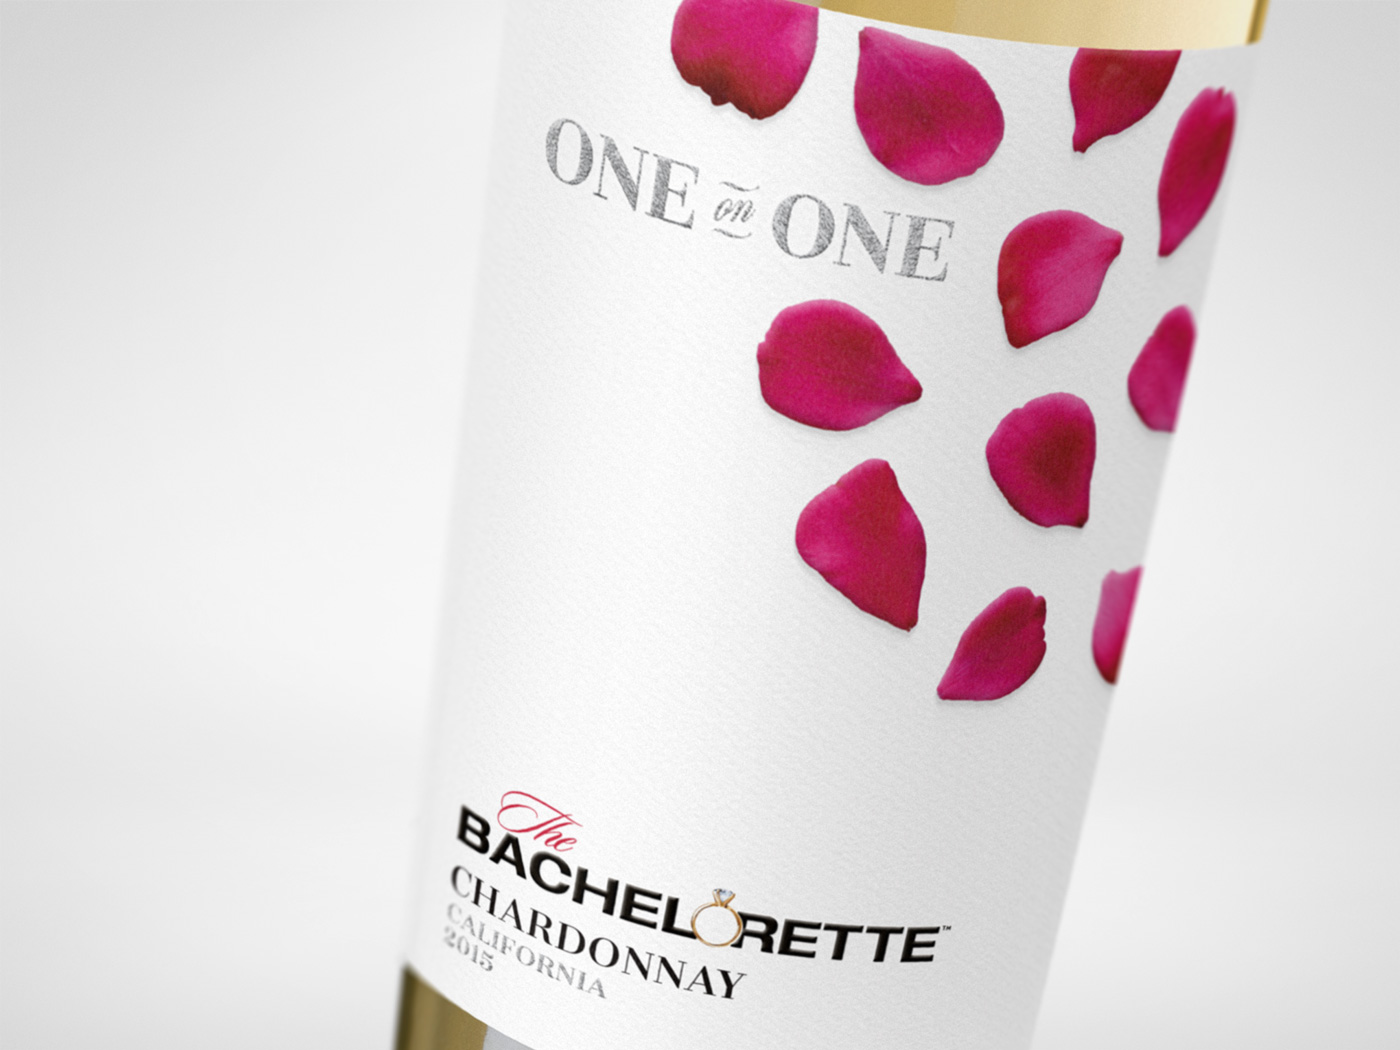 Bachelor Wines - Bachelorette One On One Closeup